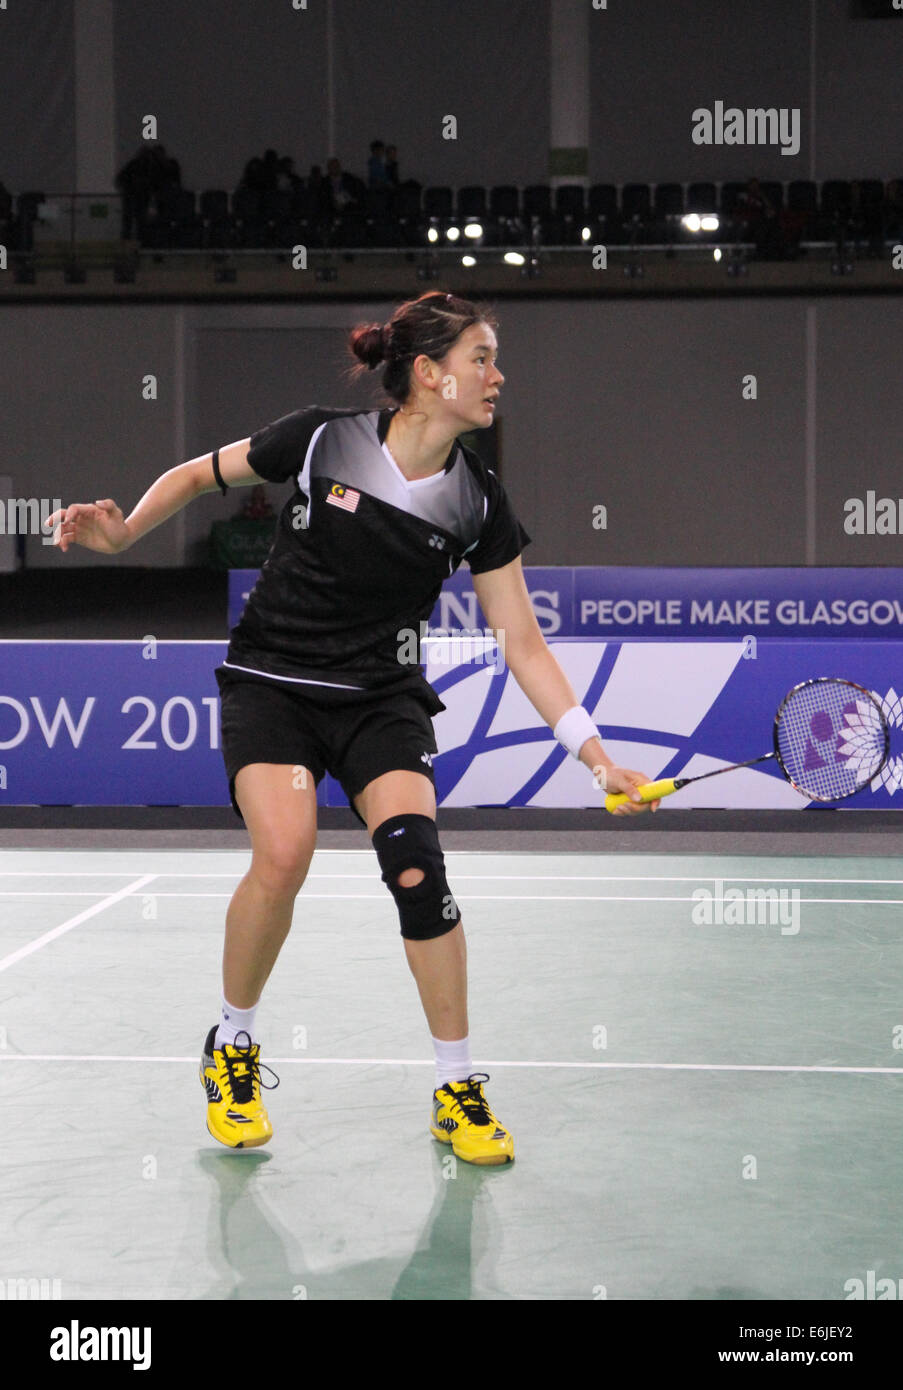 Khe Wei Woon of Malaysia v England in the semi finals of the